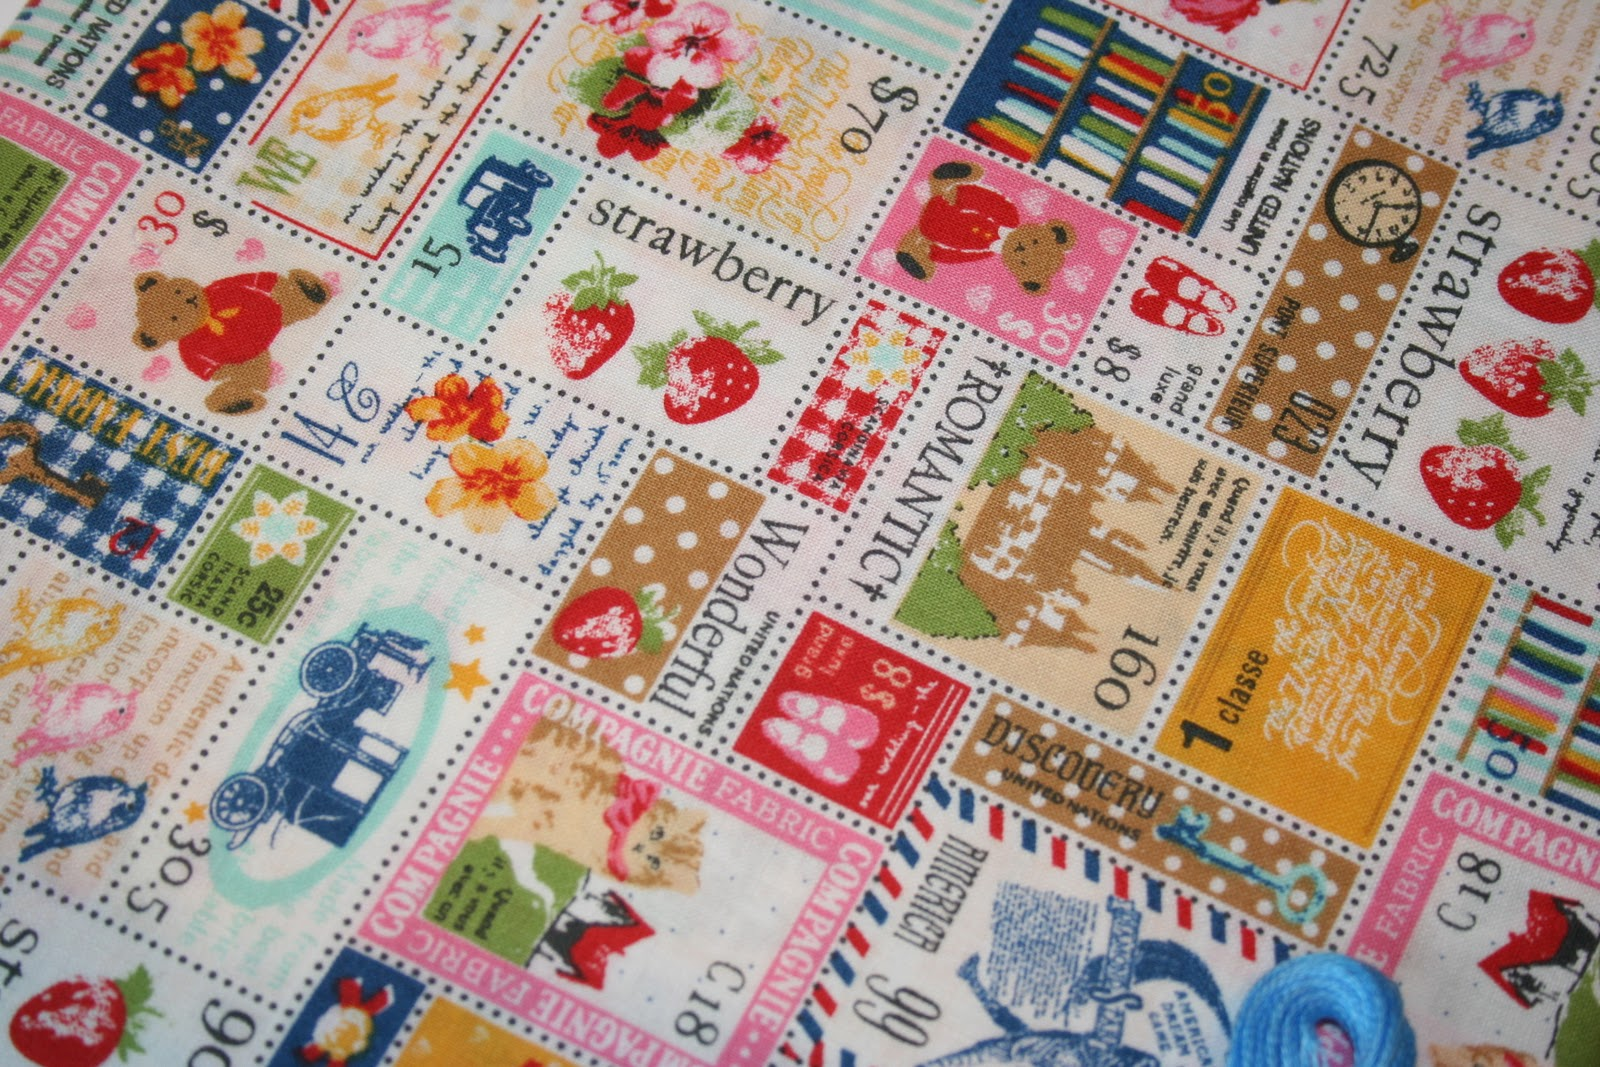 One Of The Nicest Surprises This Week Was Receiving A Little Package In Mail From Japan I Had Forgotten That Ordered Postage Stamp Fabric